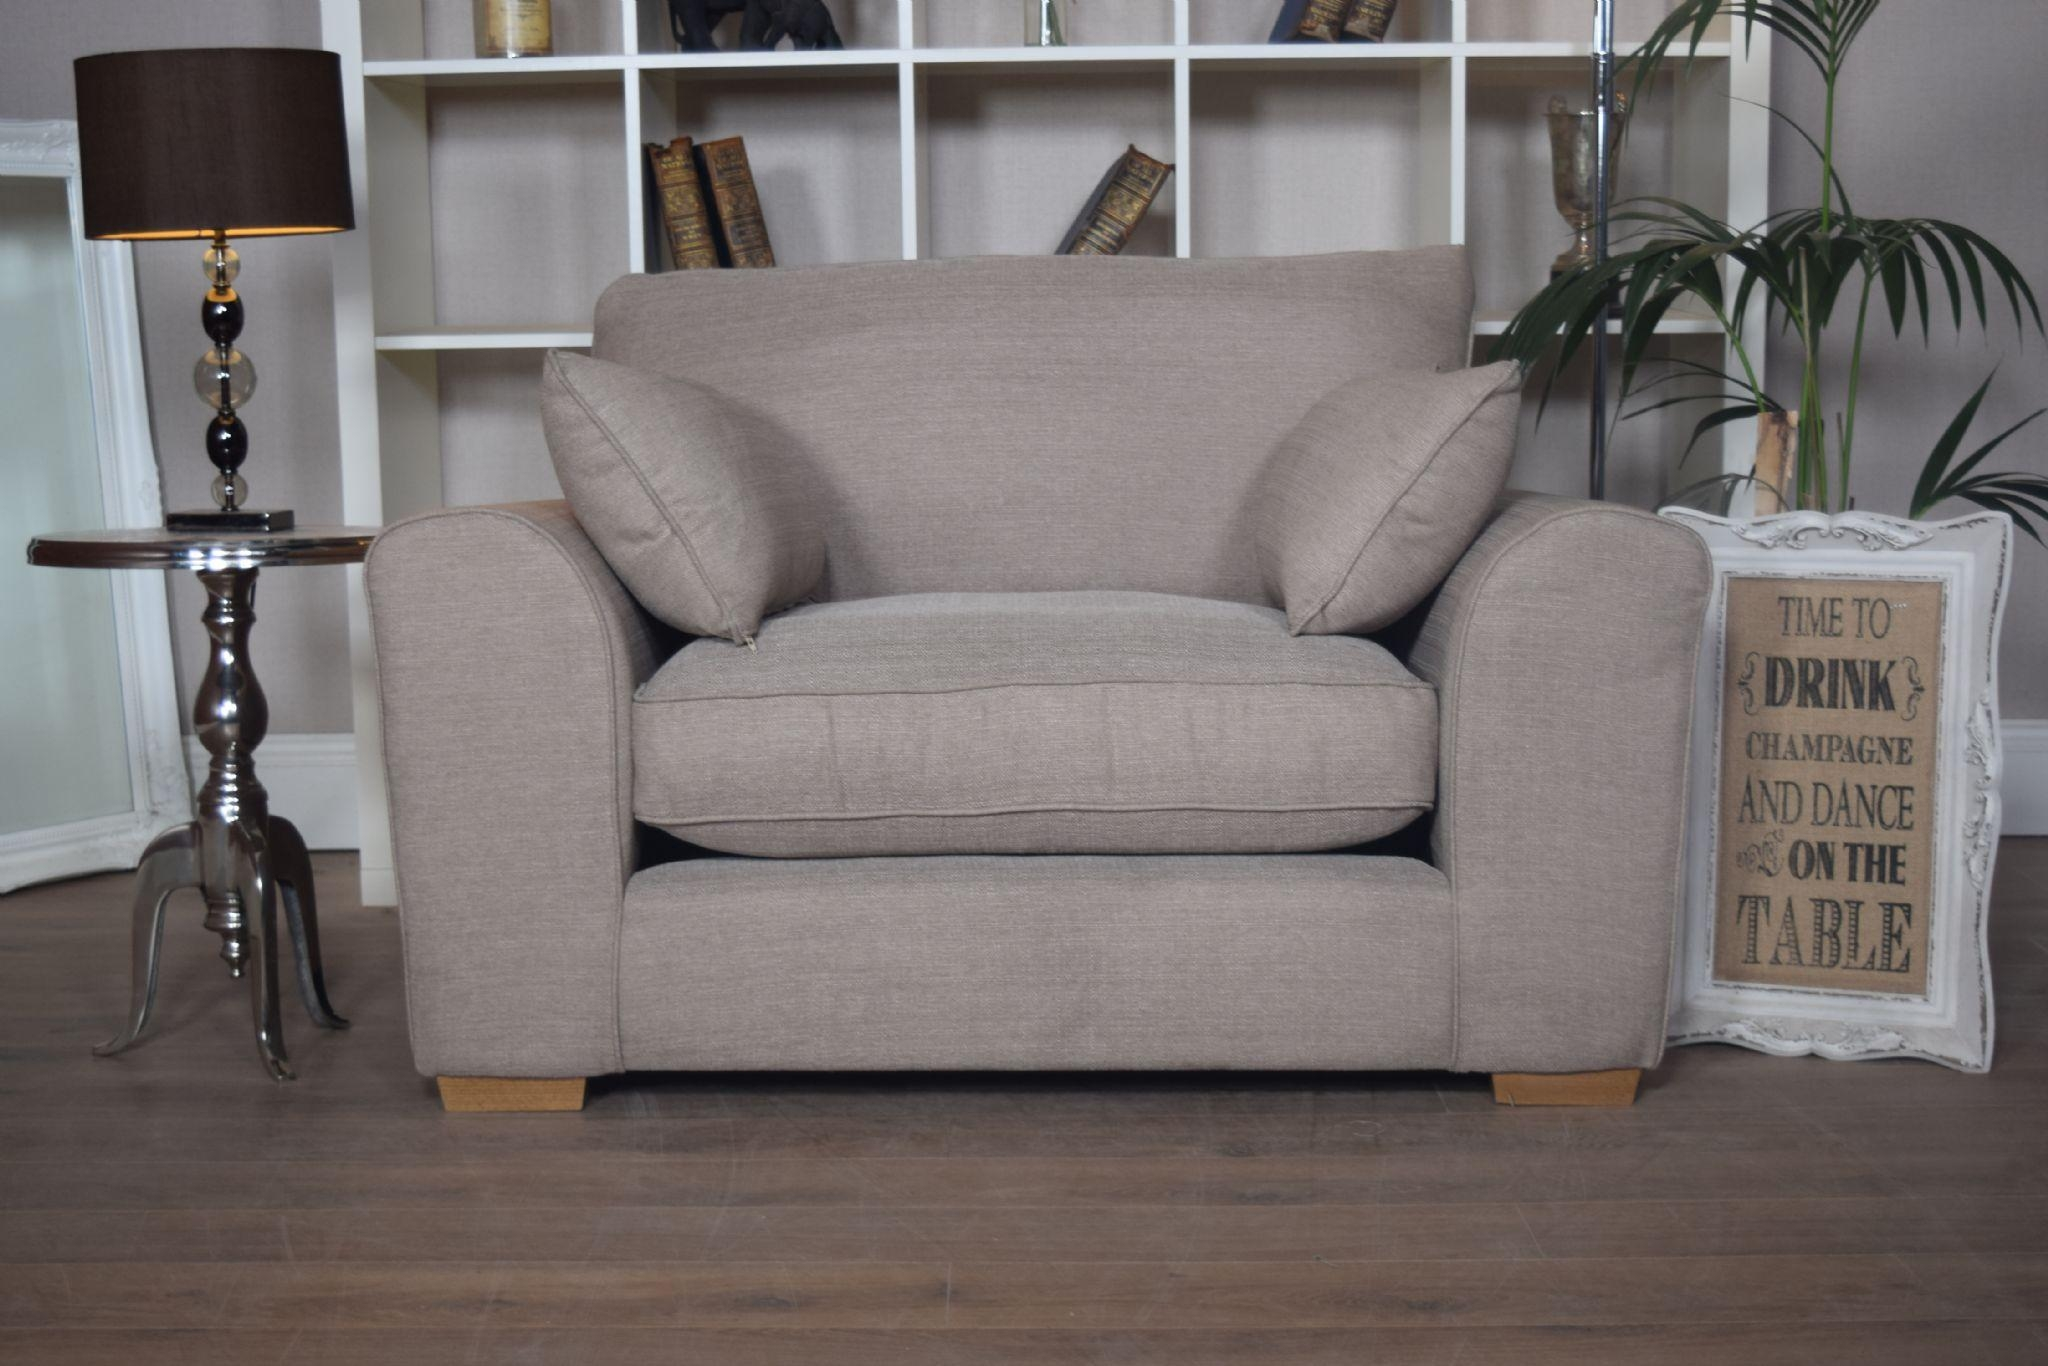 Set New Ashdown 3 Seater Sofa & Cuddle Chair Set – Beige Mink Regarding 3 Seater Sofa And Cuddle Chairs (View 6 of 20)